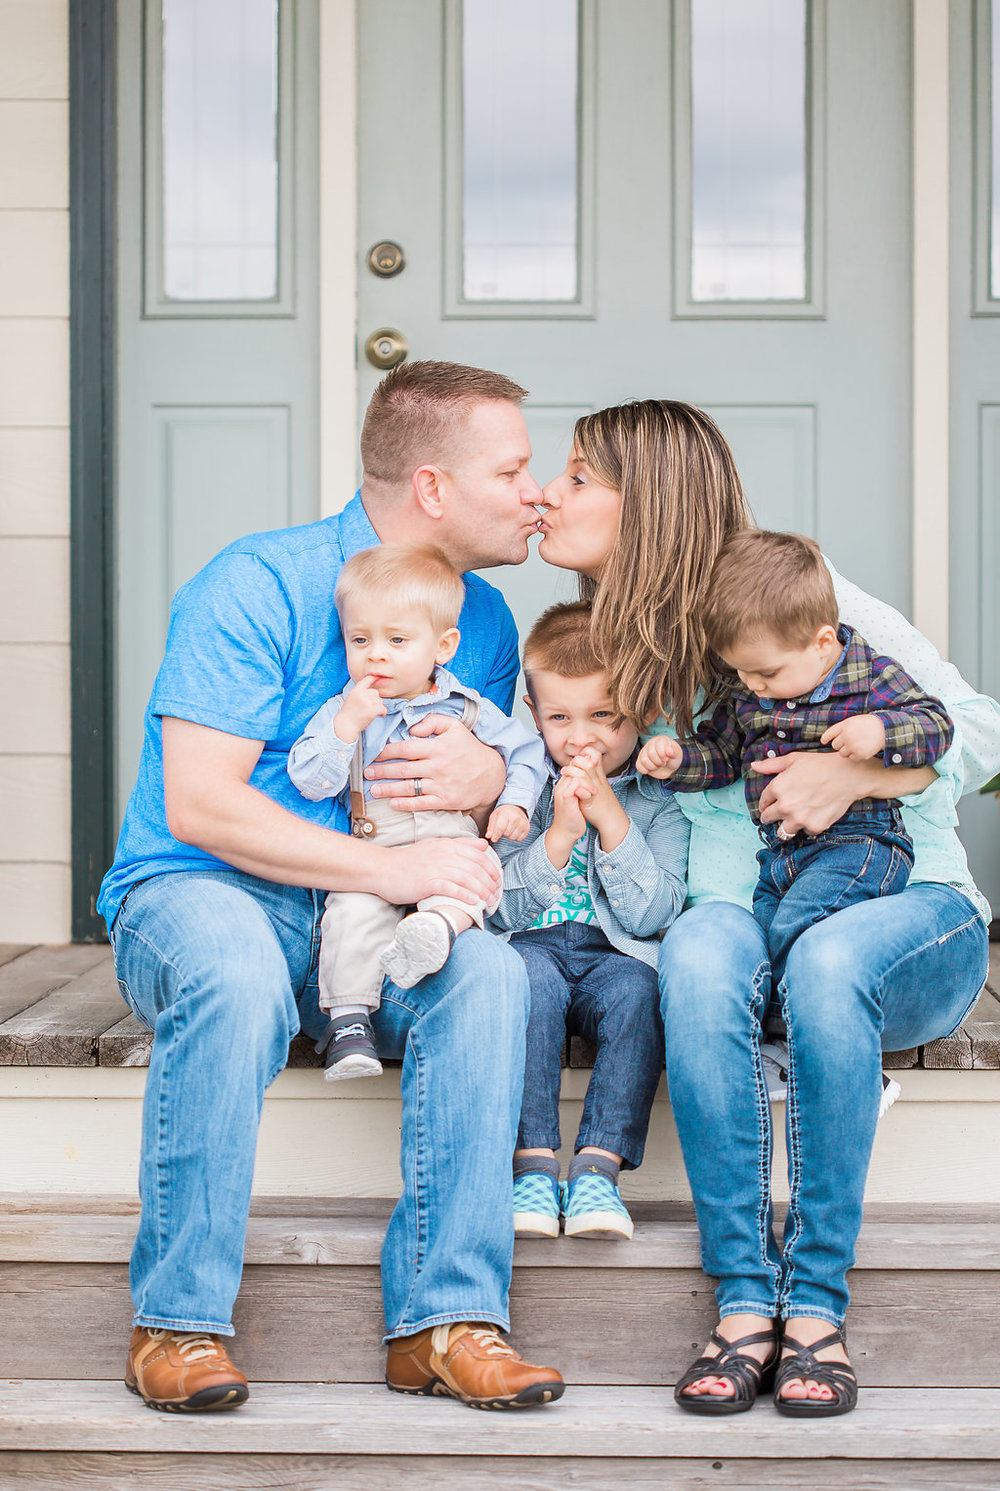 Family Photo Session | What to Wear for Family Pictures | Twin Photo Session | Family Photography | Mastin Labs | Lifestyle Photography | Twin Boys Photo Session | Beautiful Family on Front Porch | Front Porch Photo Shoot | Husband and Wife Kiss Shot | Beautiful Kids